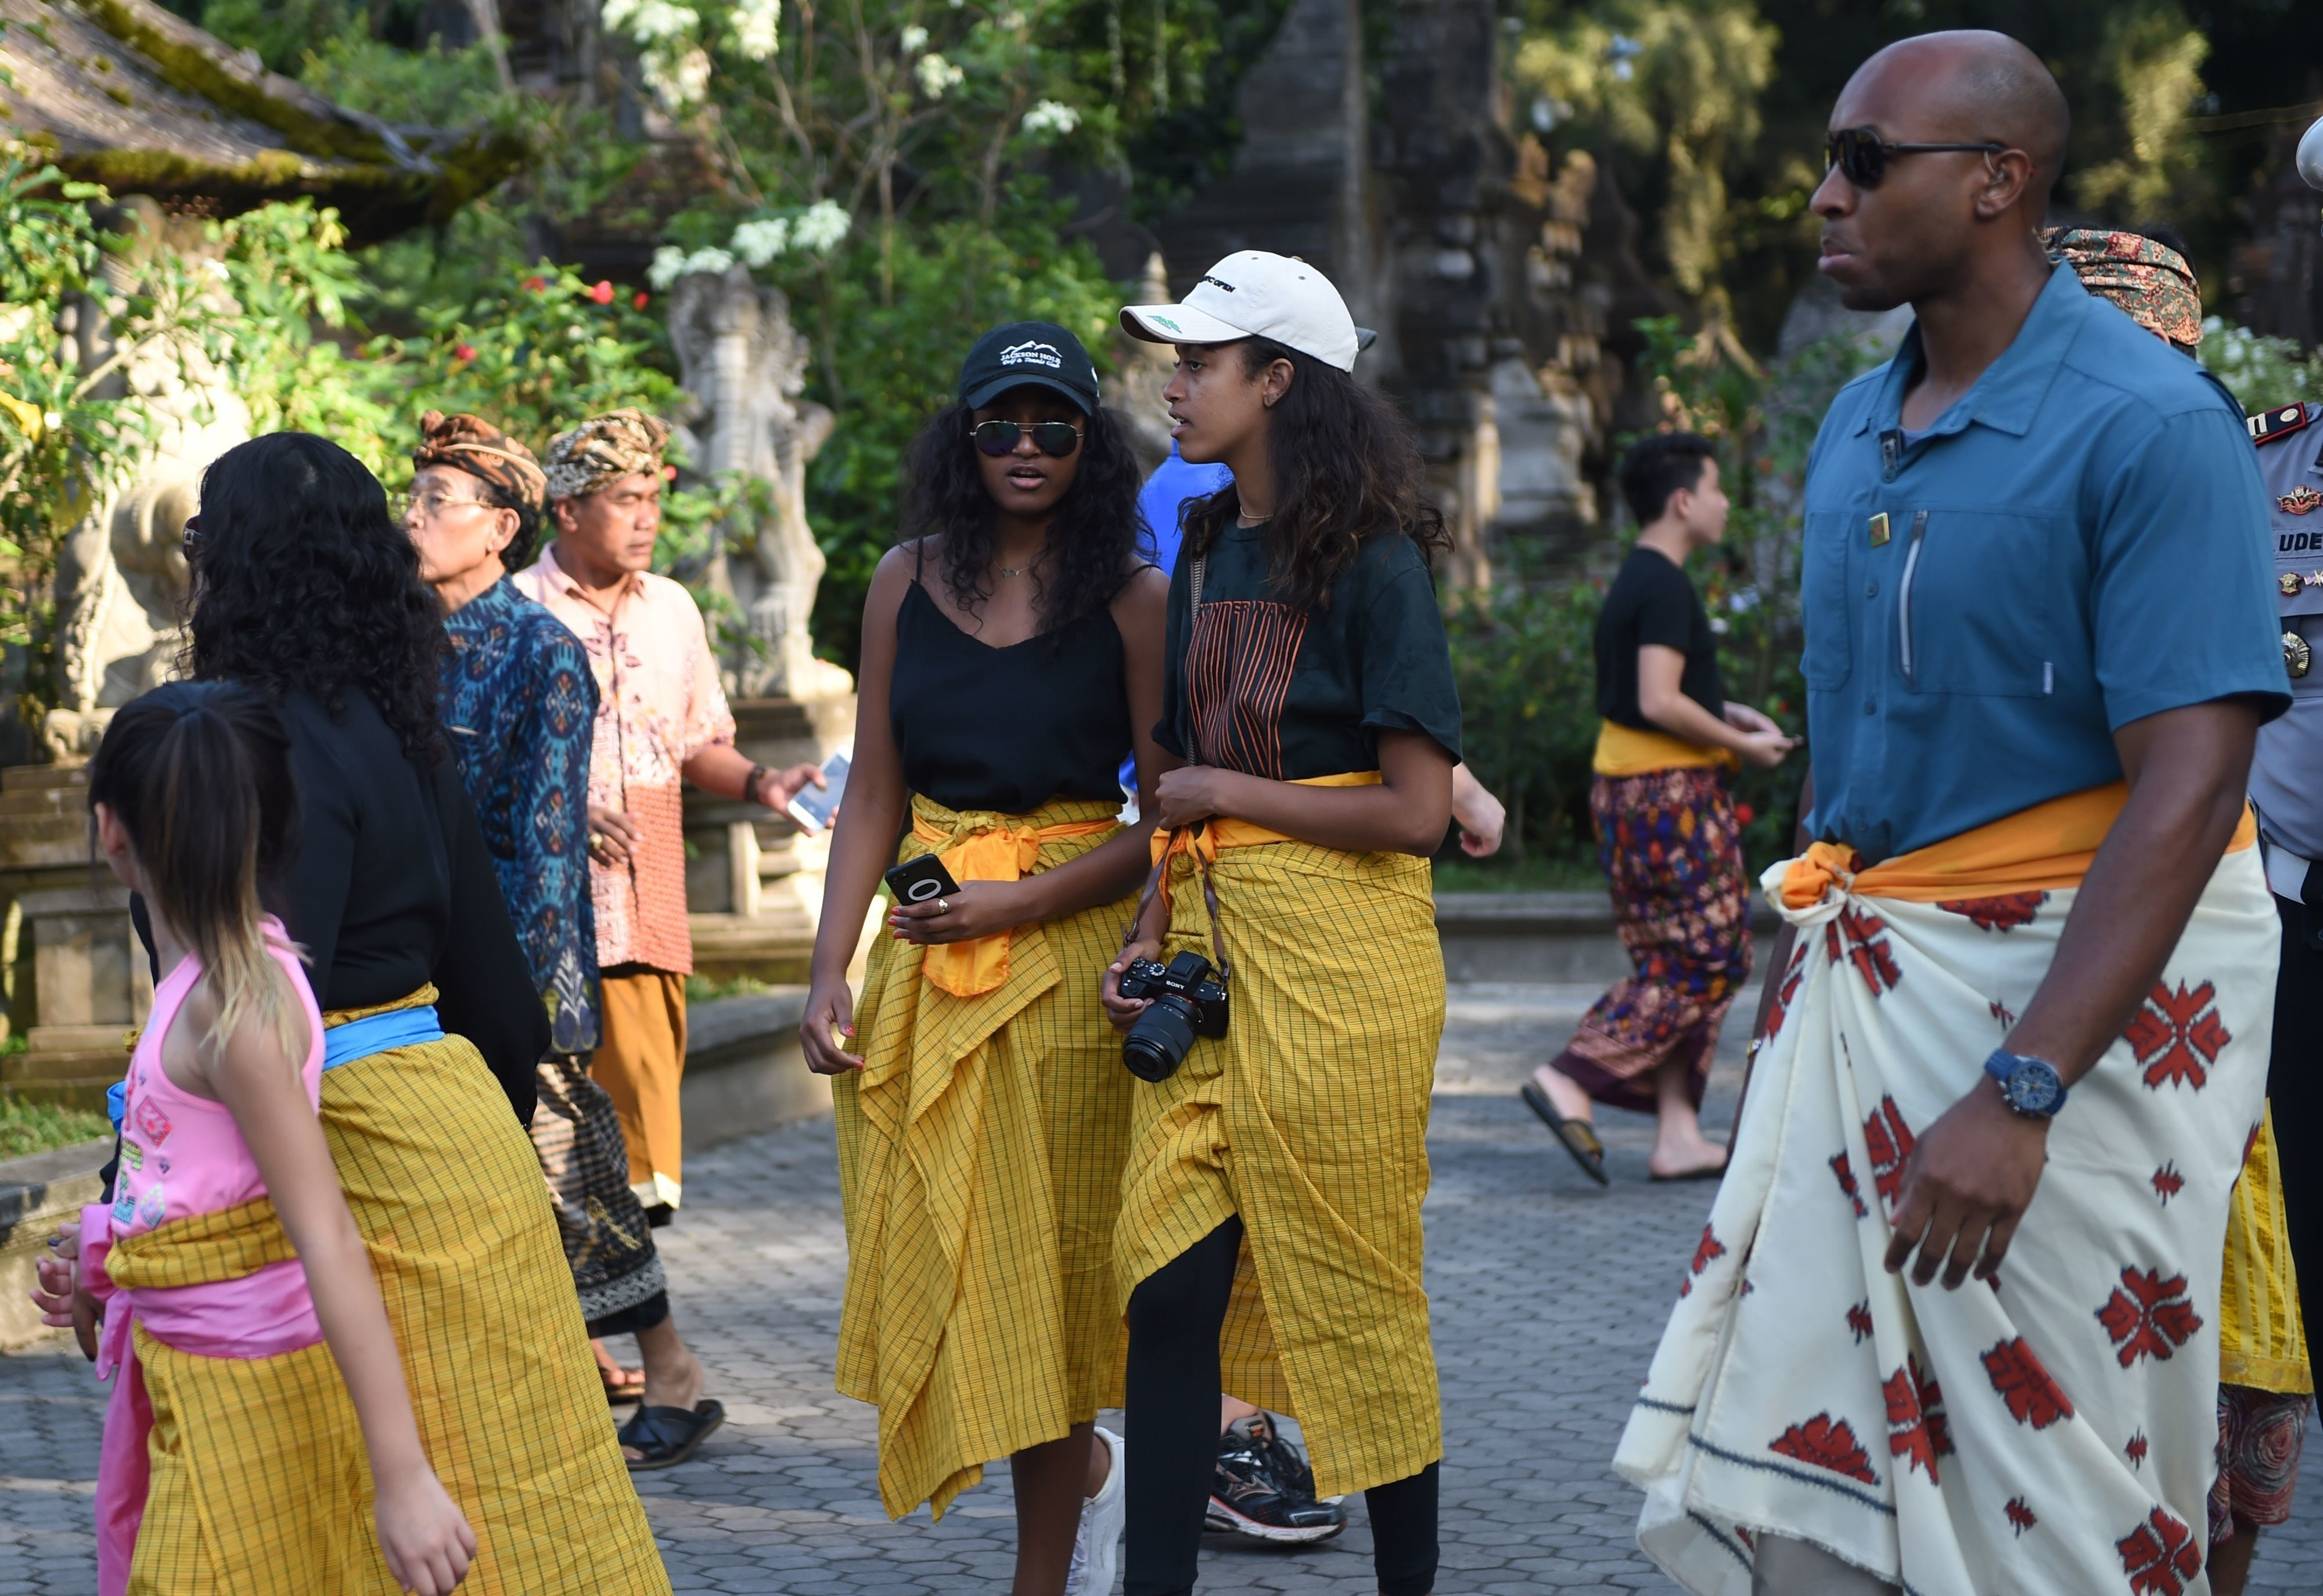 Sasha and Malia were looking cool and appropriate.